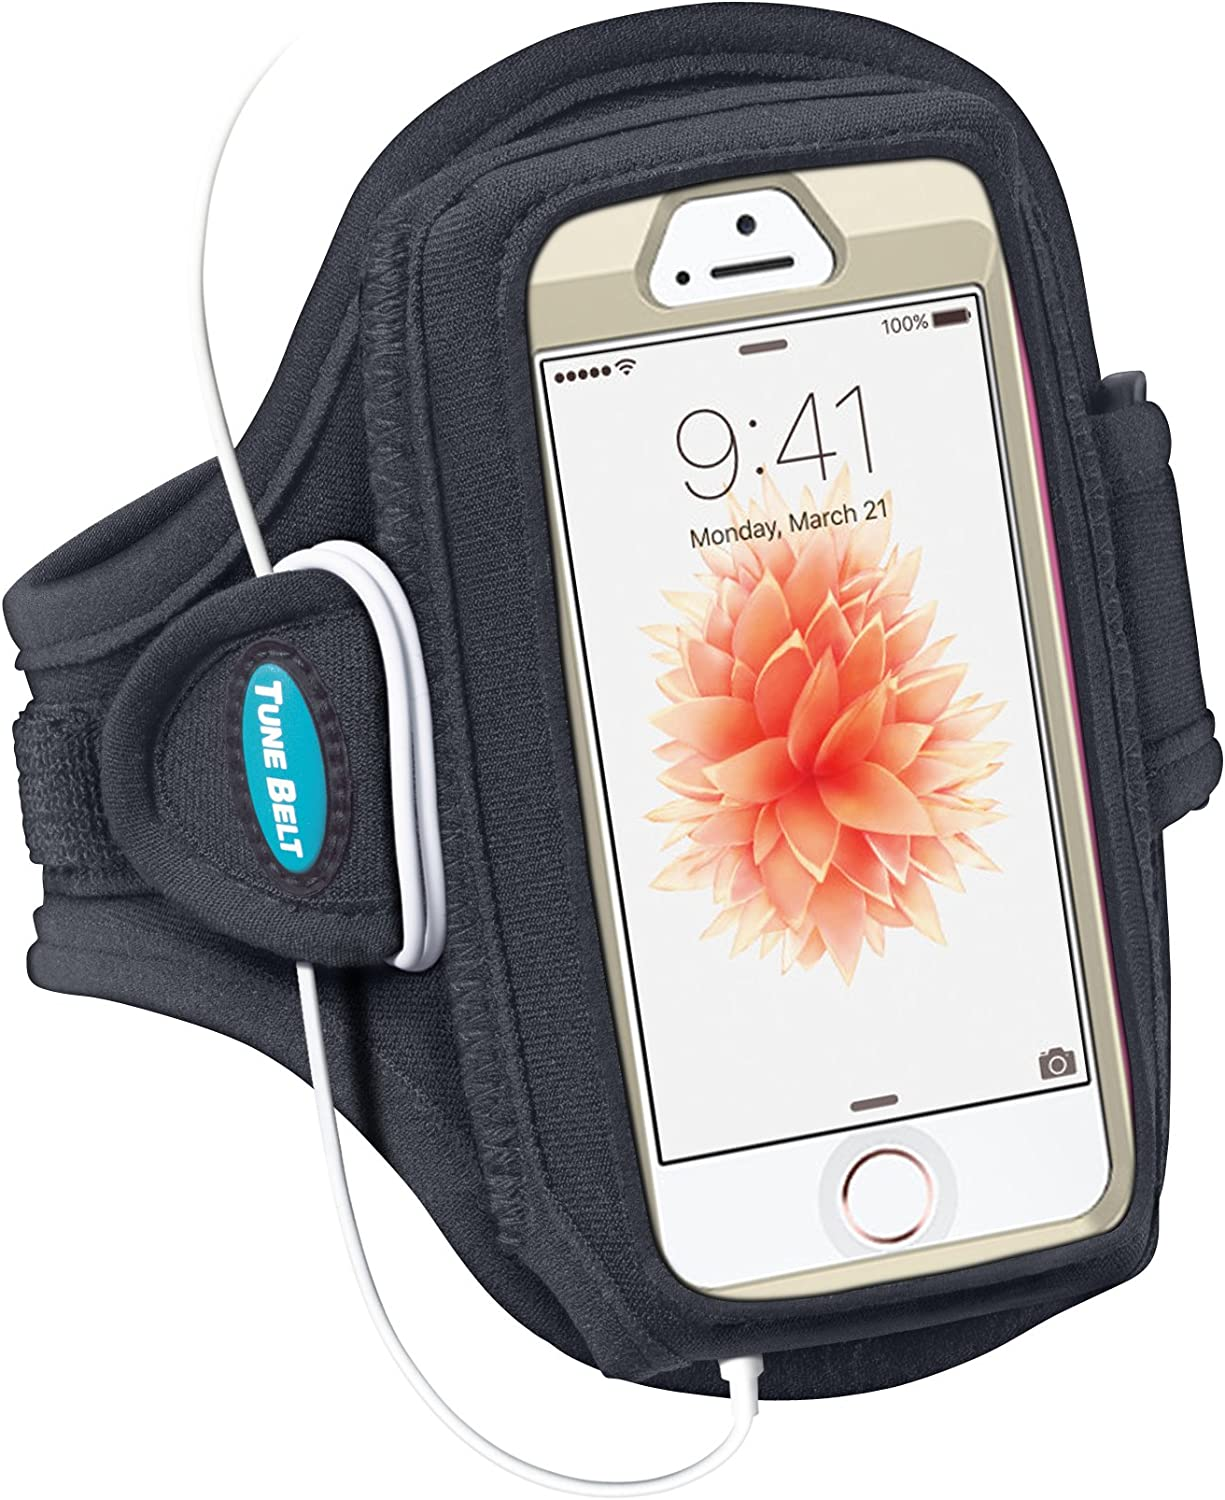 Tune Belt Armband for iPhone SE (1st Generation 2016) and iPhone 5s 5 5c 4S 4 with OtterBox Defender, Commuter or Other Large Case - for Running & Working Out - Sweat-Resistant